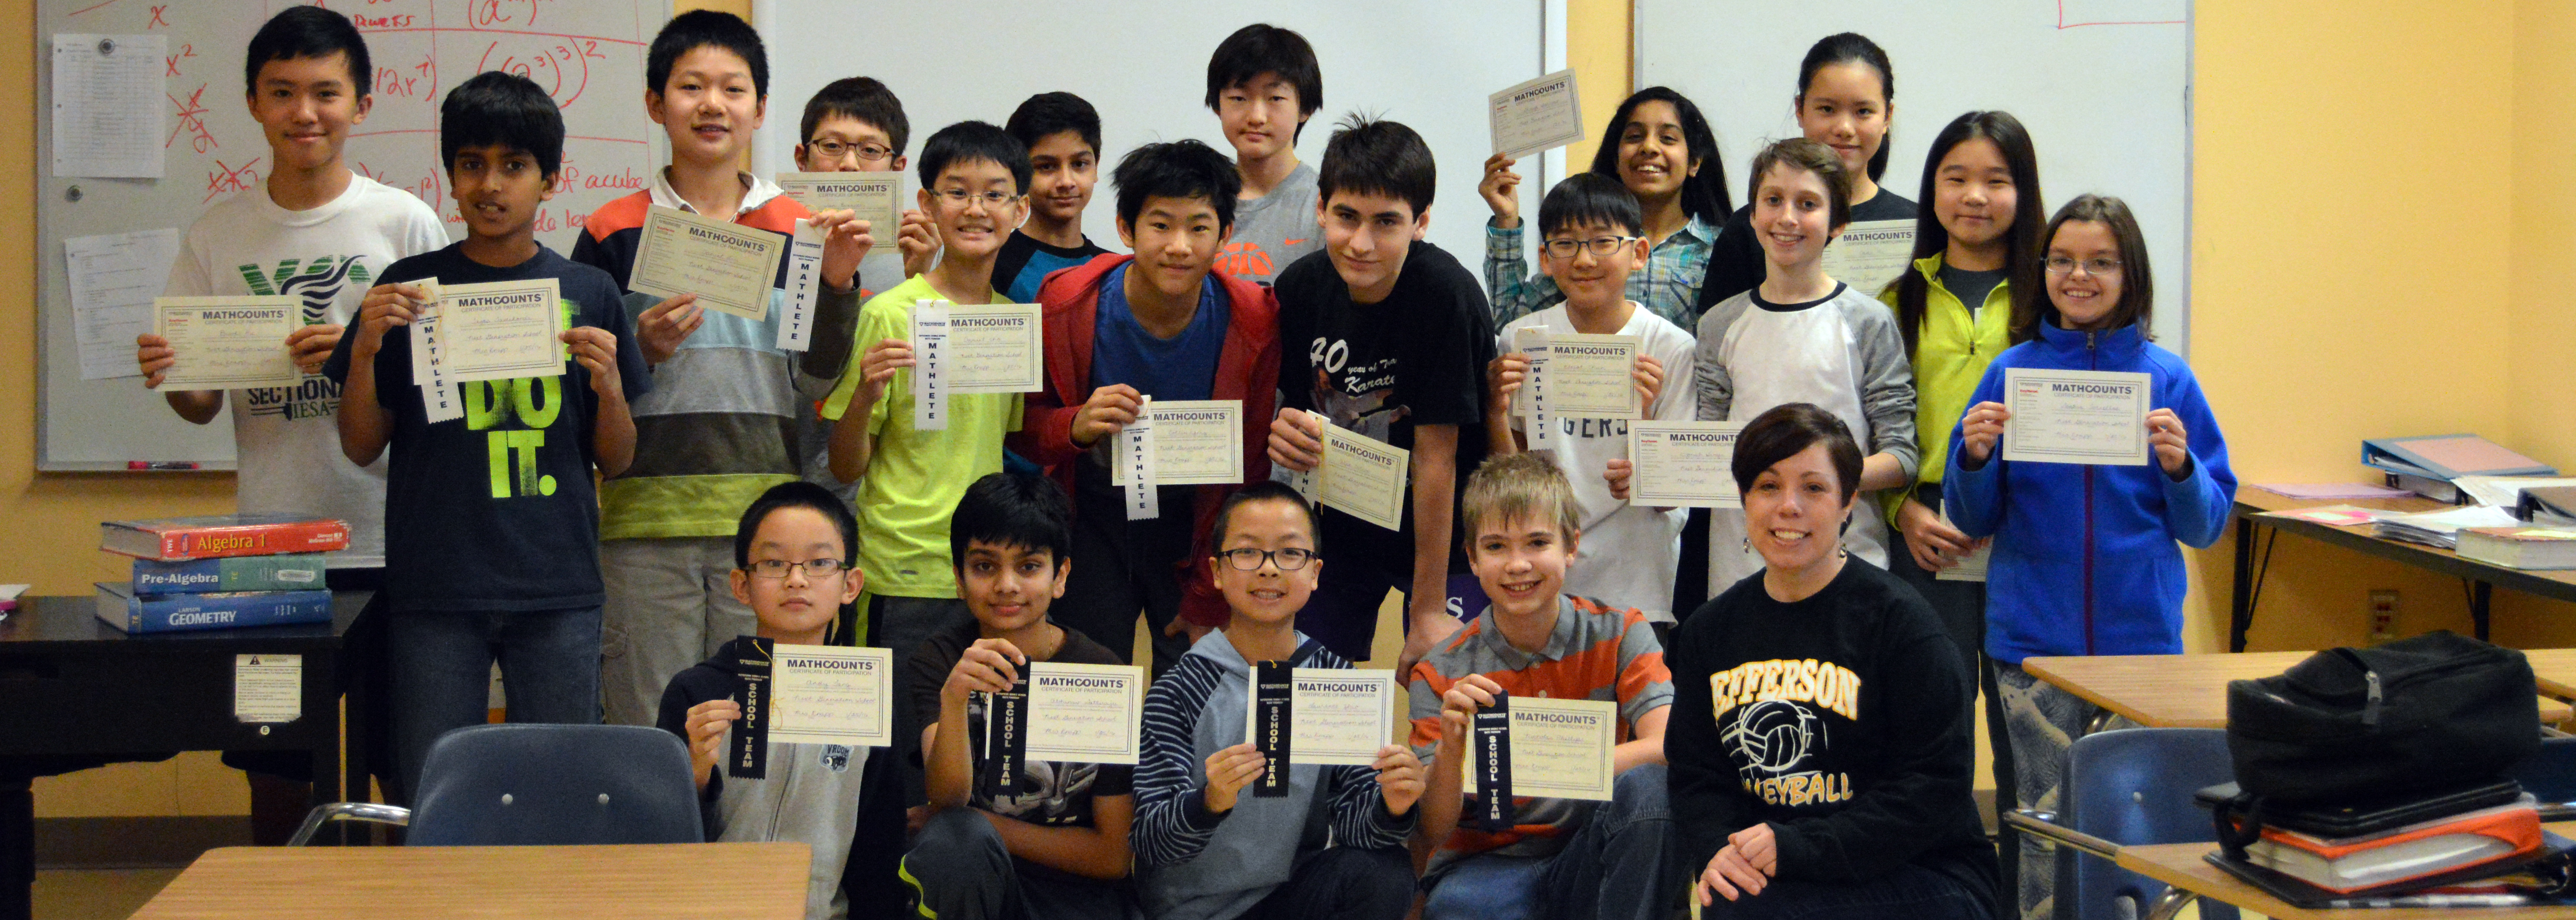 MathCounts team represents at 2016 state competition